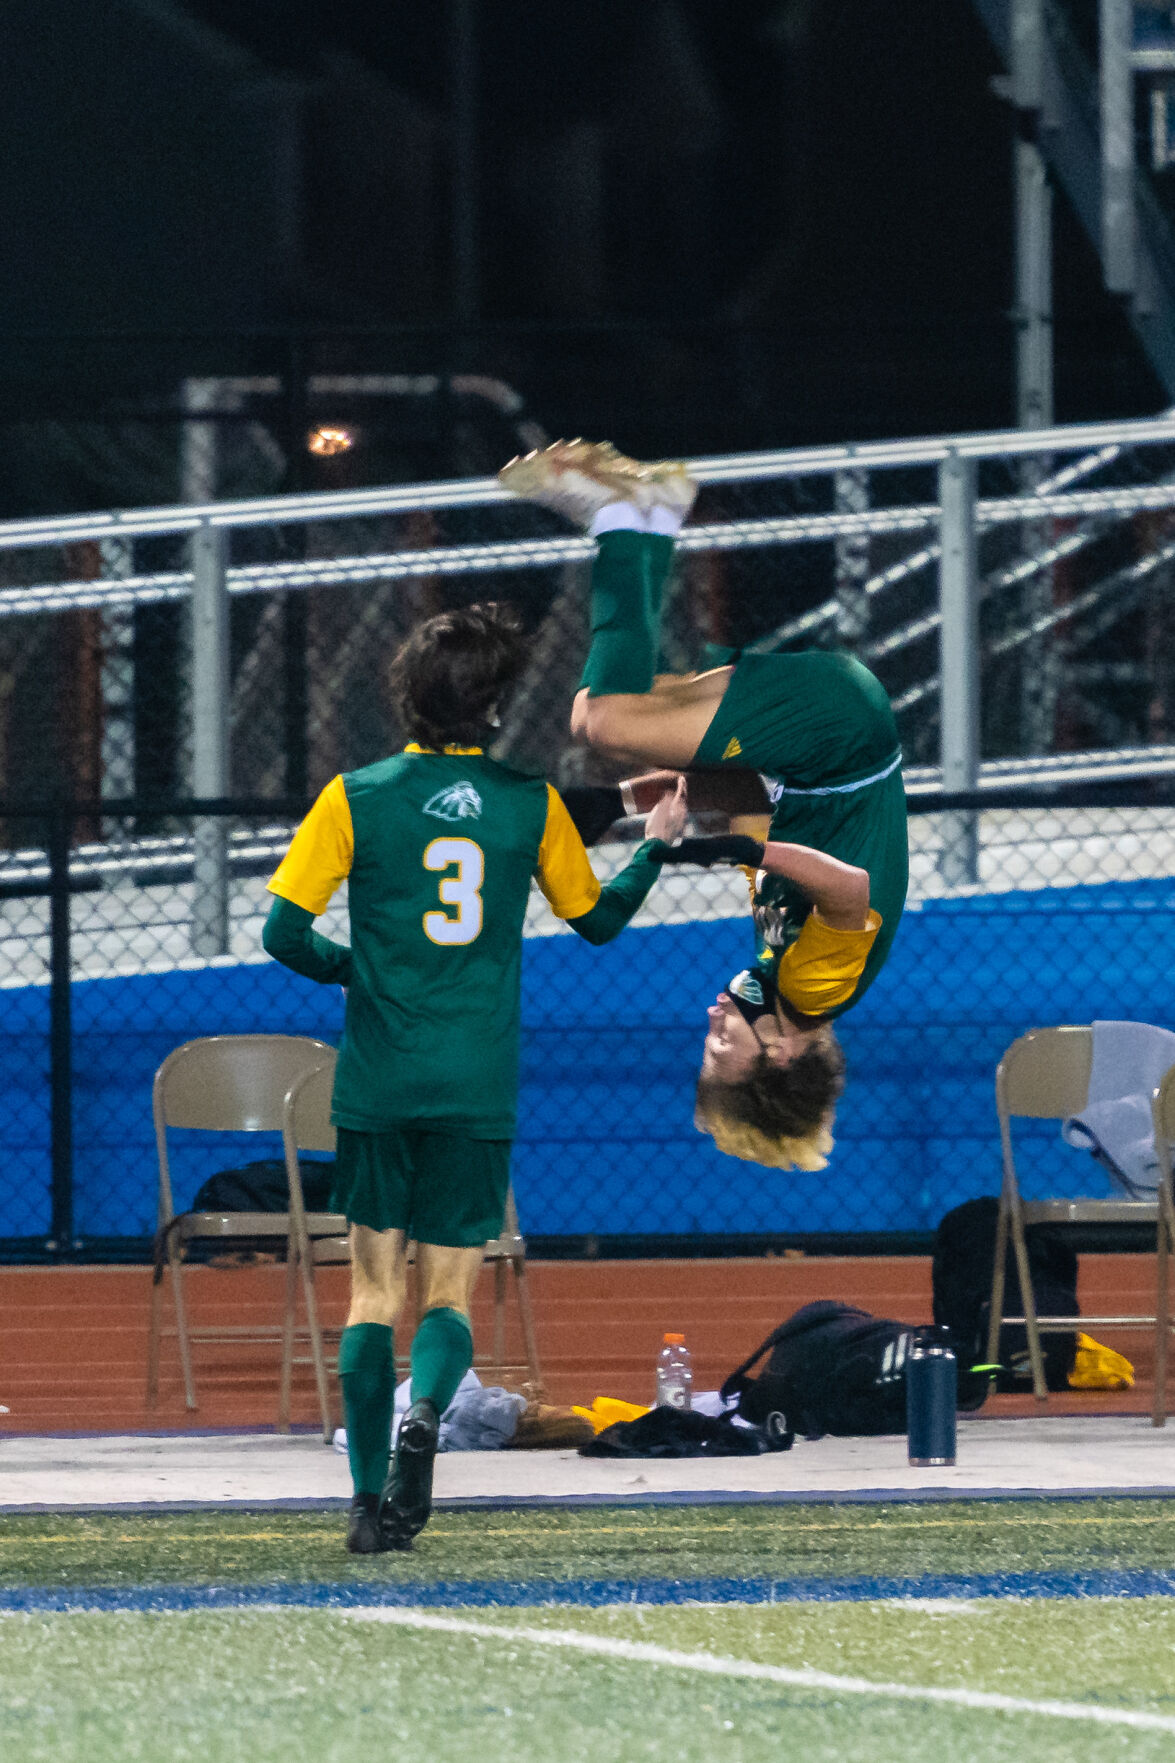 IR Boys' Soccer vs. Newark Charter School - State Championship - Jordan Illian does a front flip after scoring the second goal of the game-SLam-2373.jpg